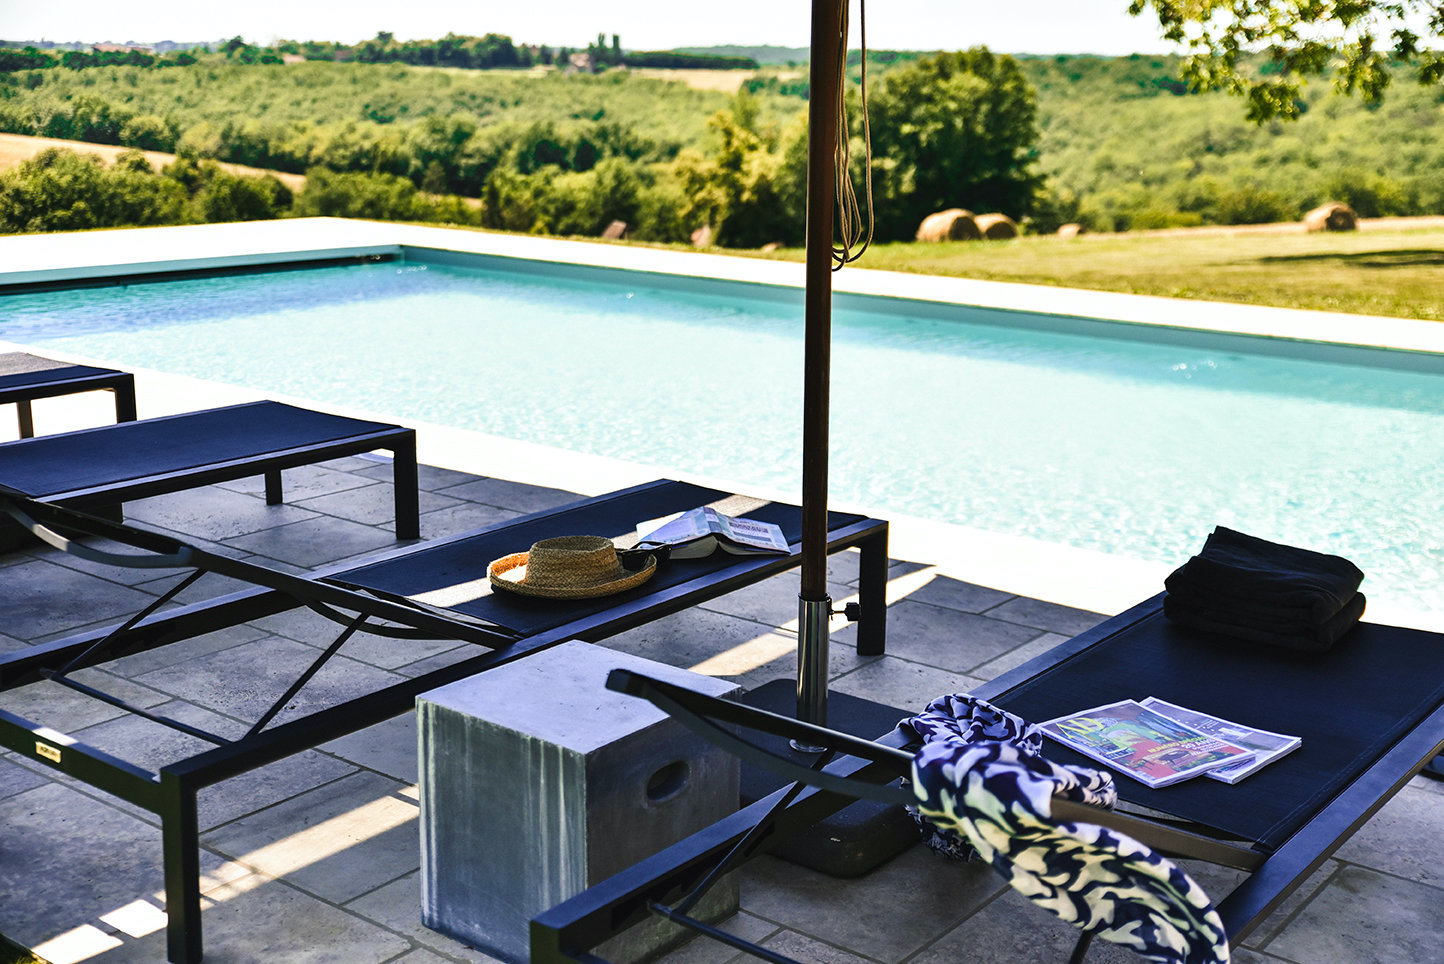 Luxury gîte with private heated pool overlooking the Dordogne countryside with sun loungers and parasols